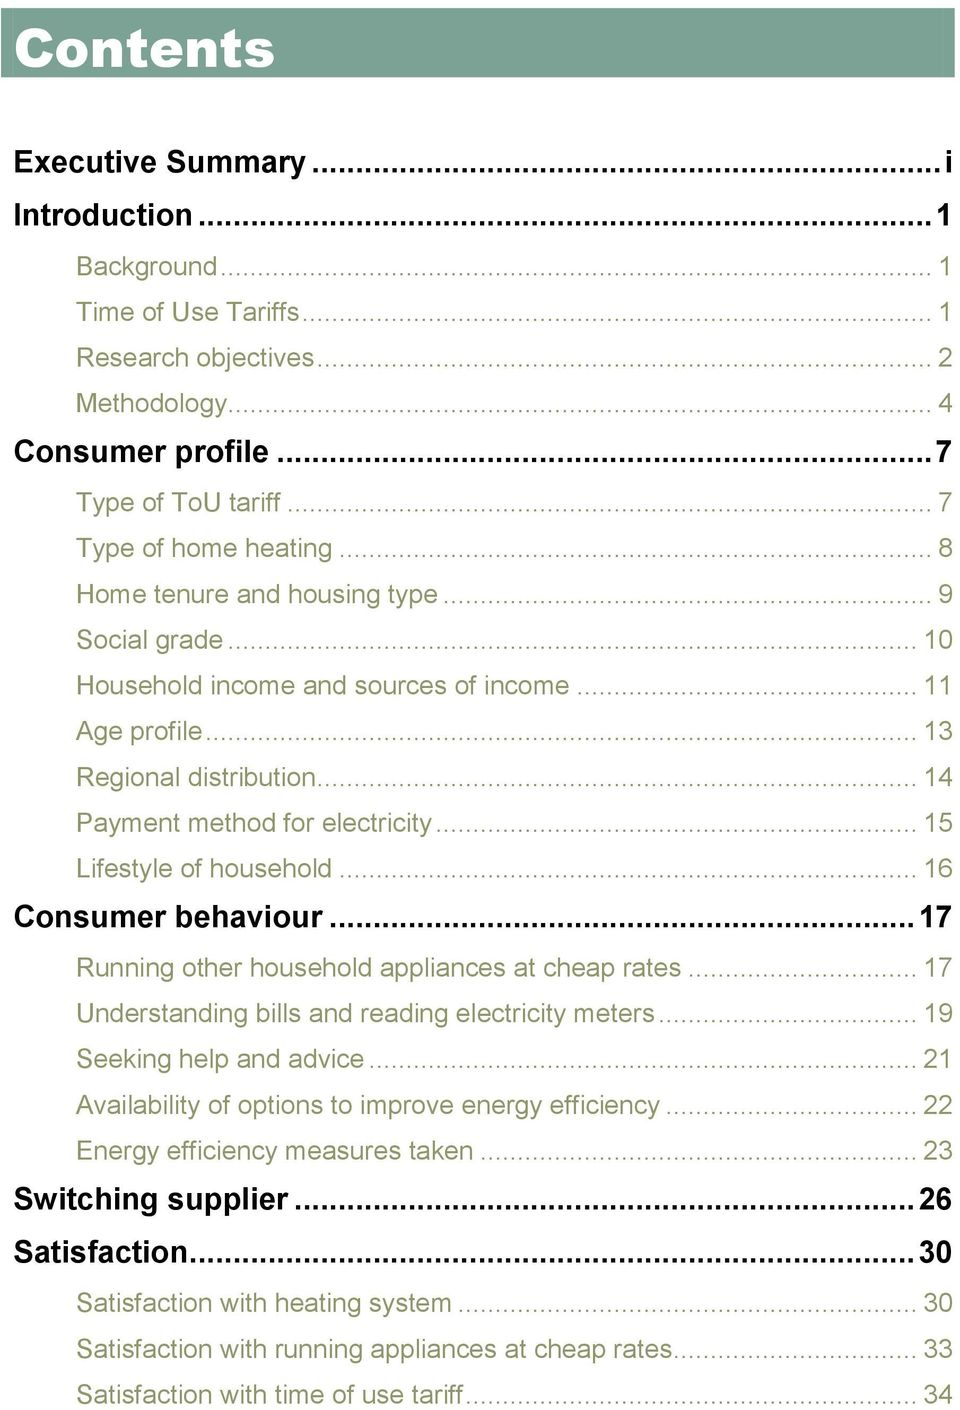 .. 15 Lifestyle of household... 16 Consumer behaviour... 17 Running other household appliances at cheap rates... 17 Understanding bills and reading electricity meters... 19 Seeking help and advice.